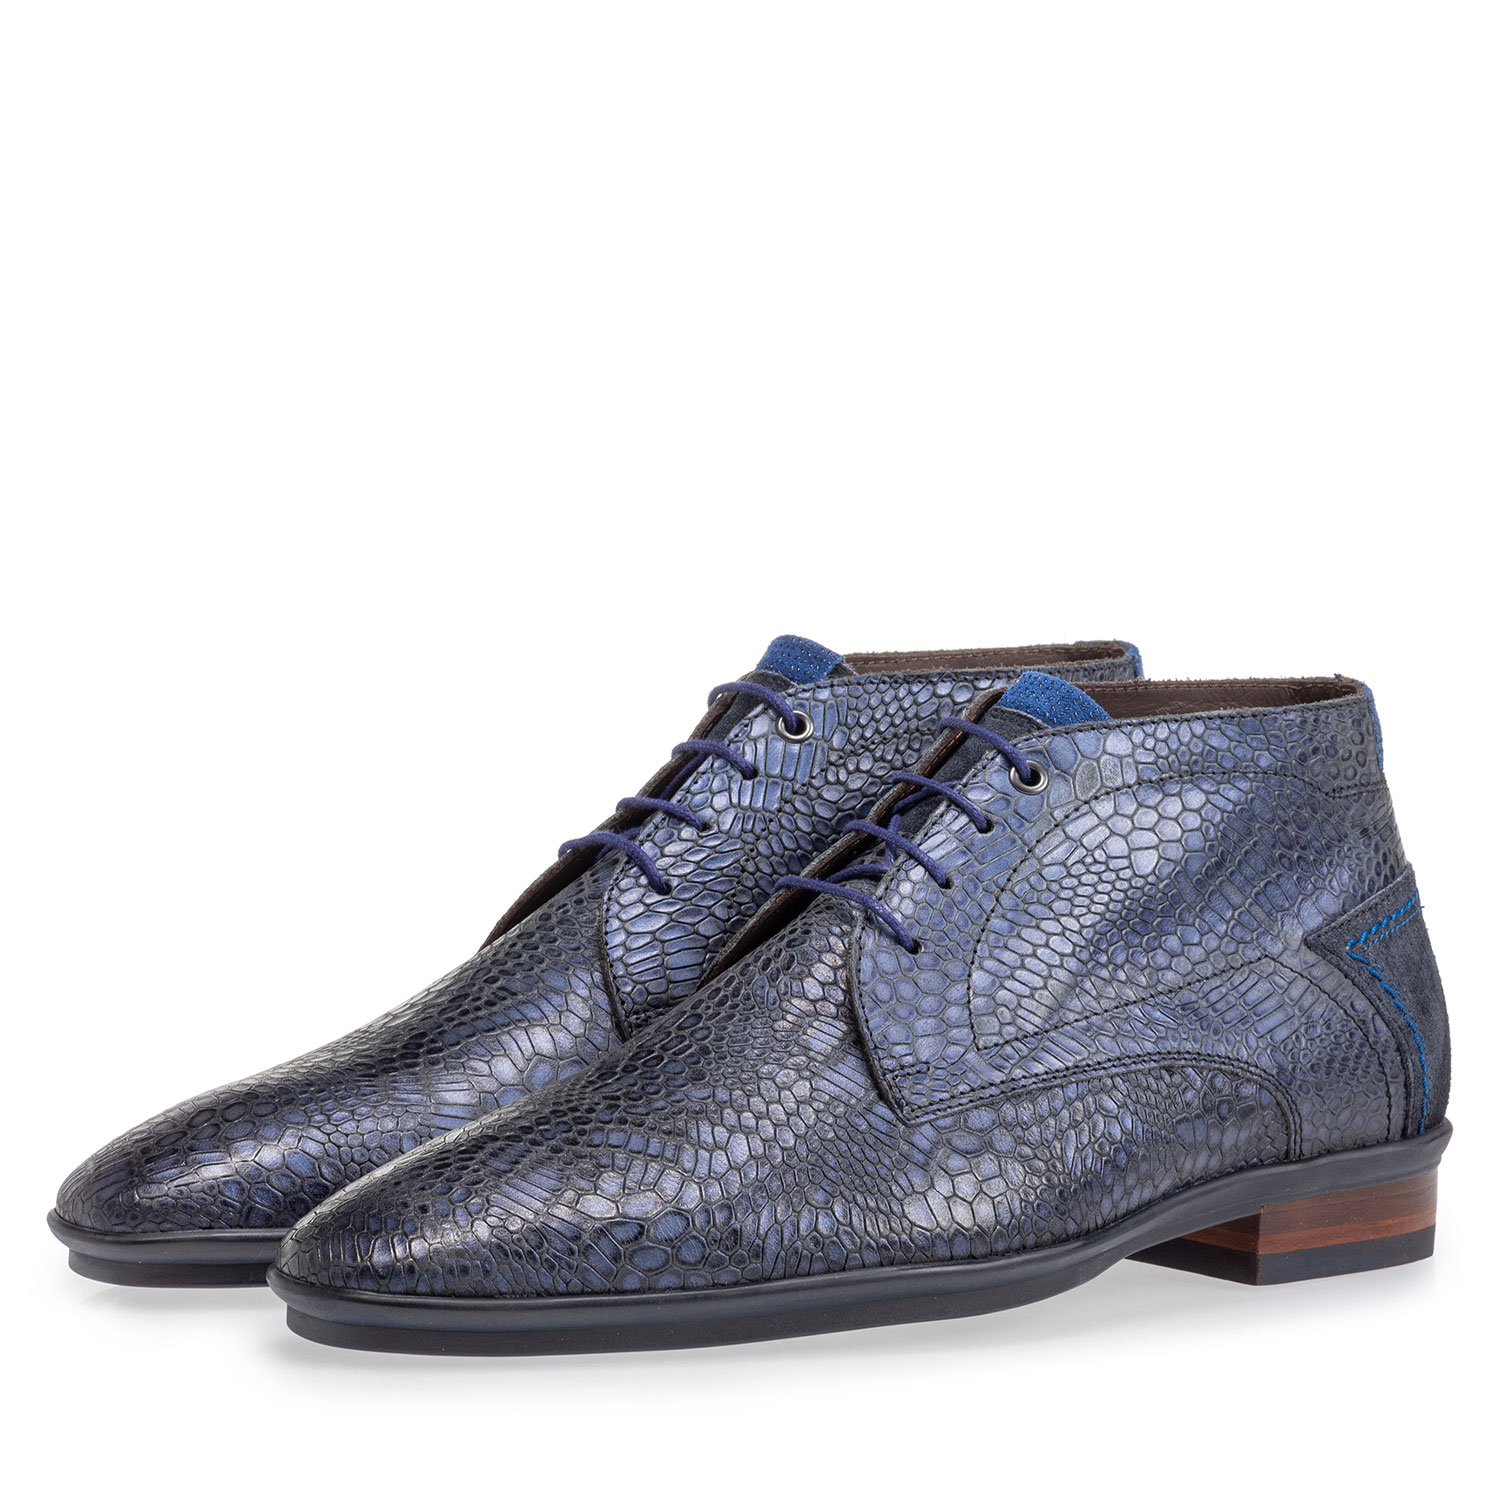 20440/33 - Lace boot with print blue